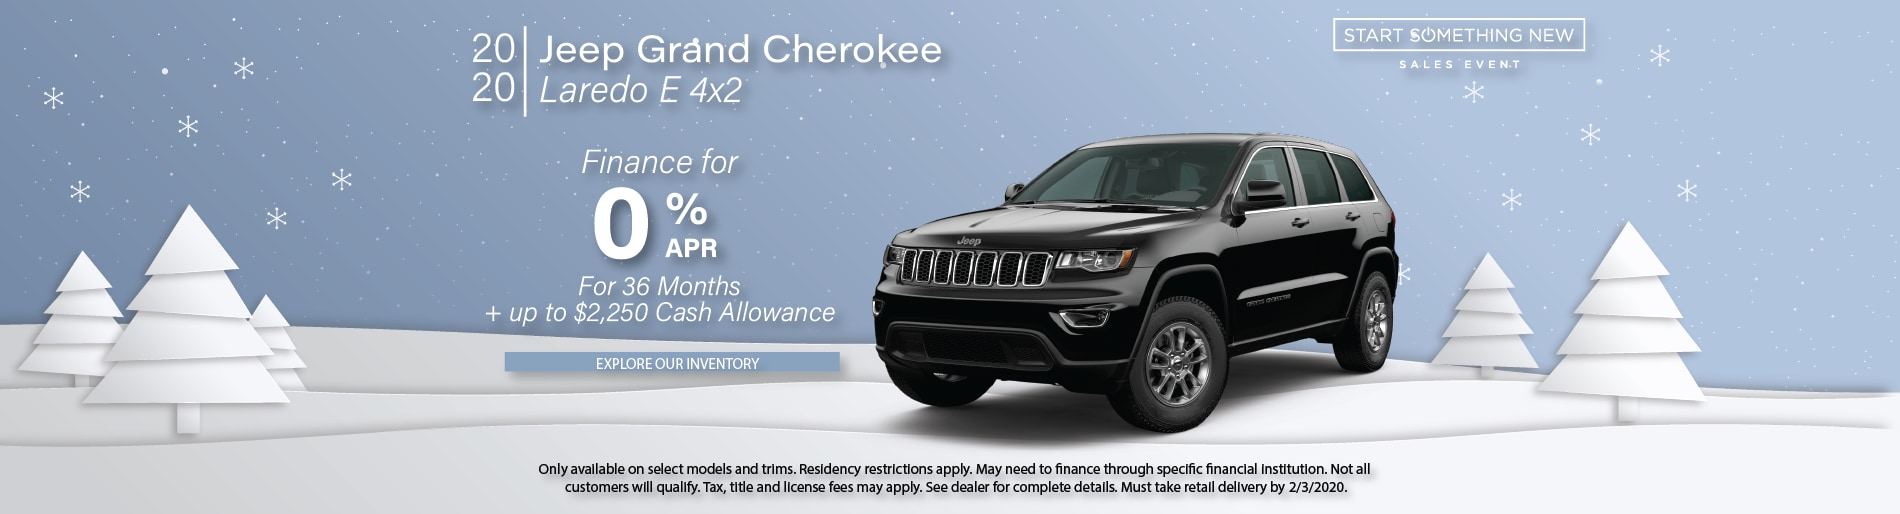 Wilson Chrysler Dodge Jeep Ram | New and Pre-Owned Cars ...